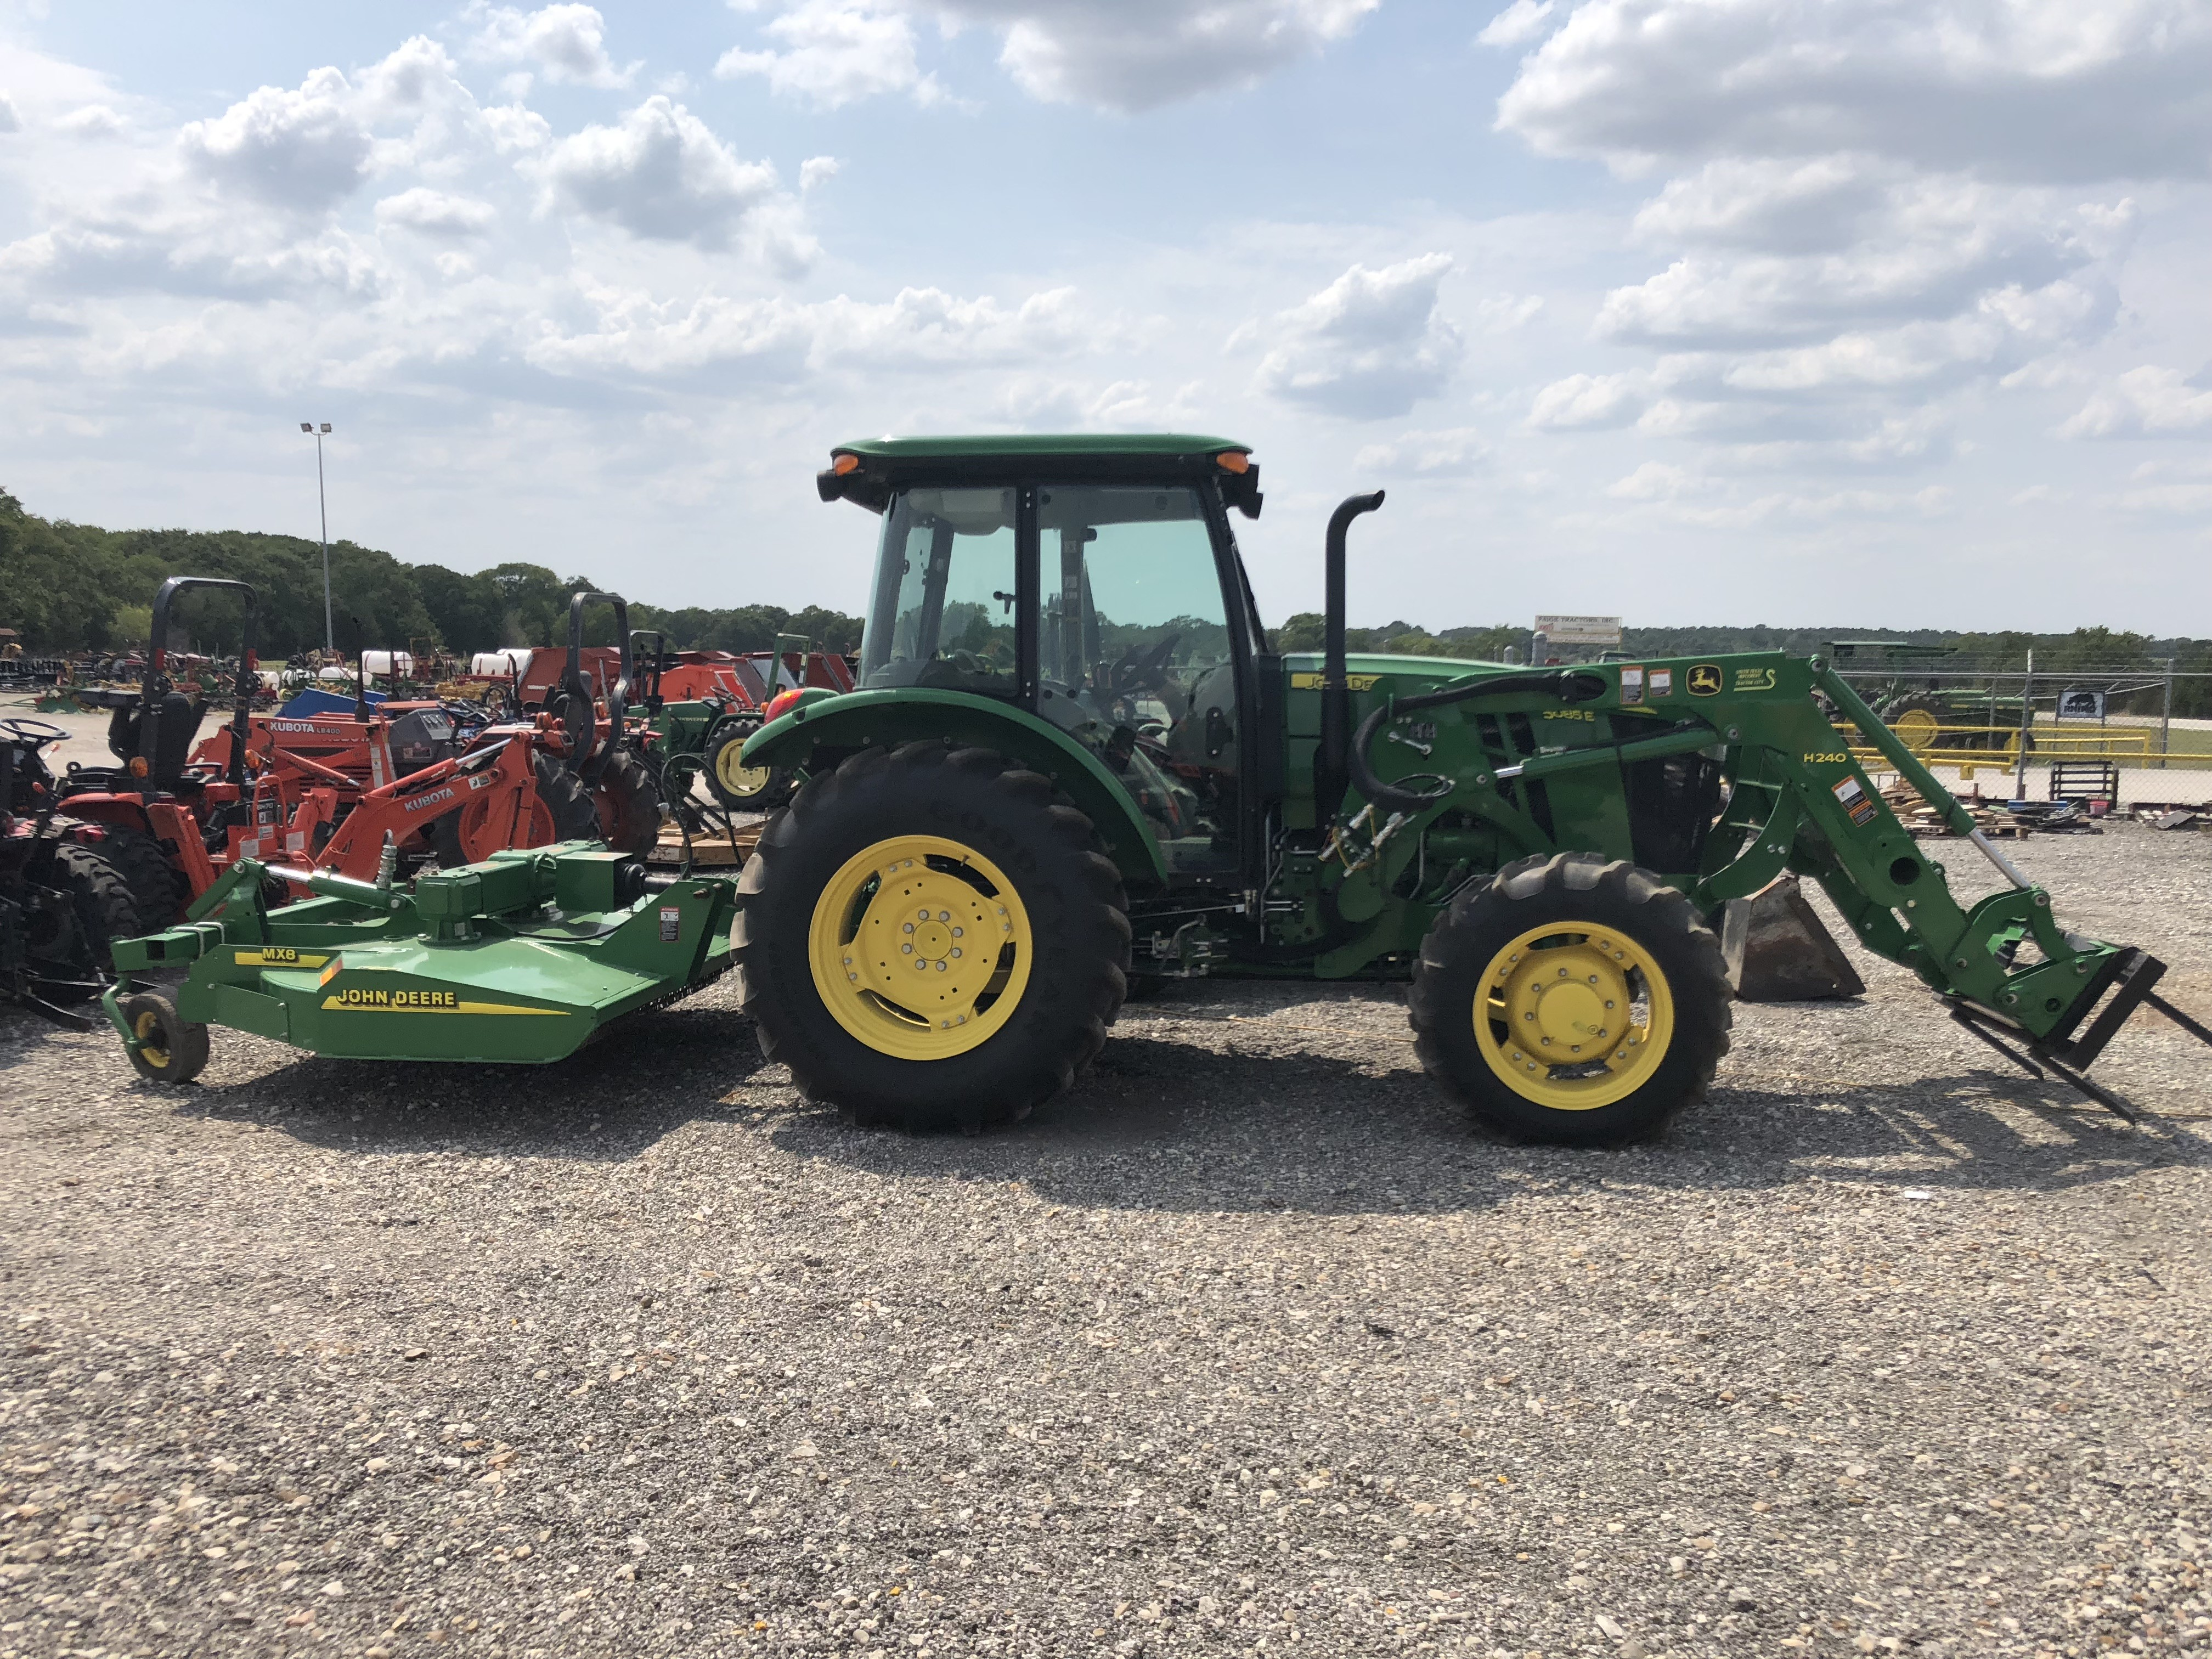 New Models from Paige Tractors Inc